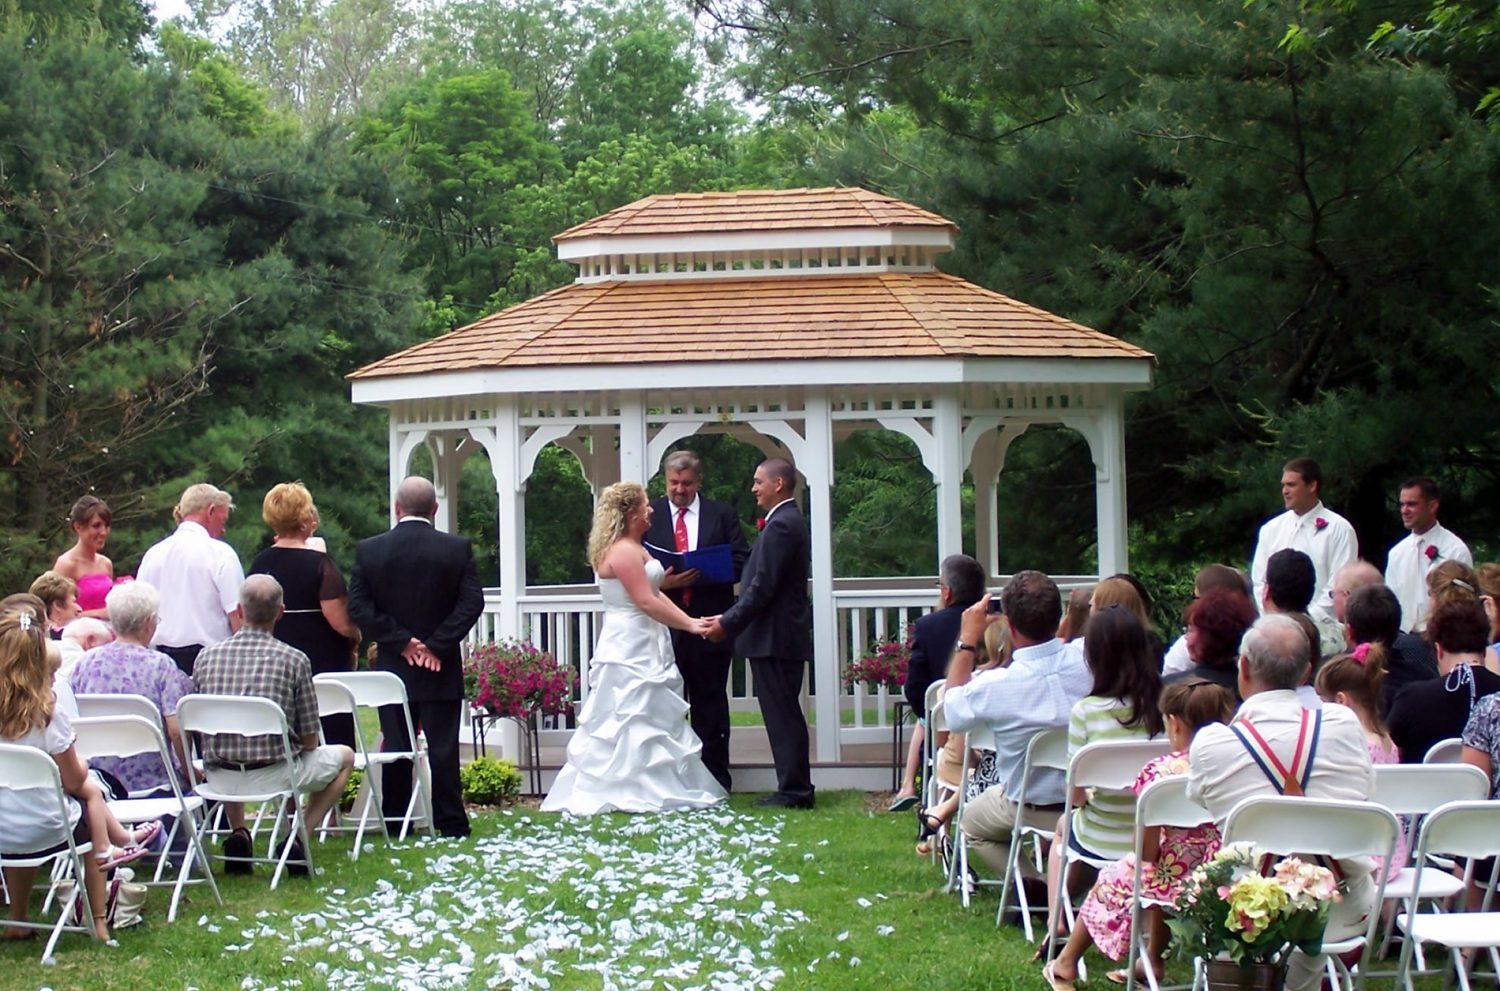 couple at altar in front of gazebo